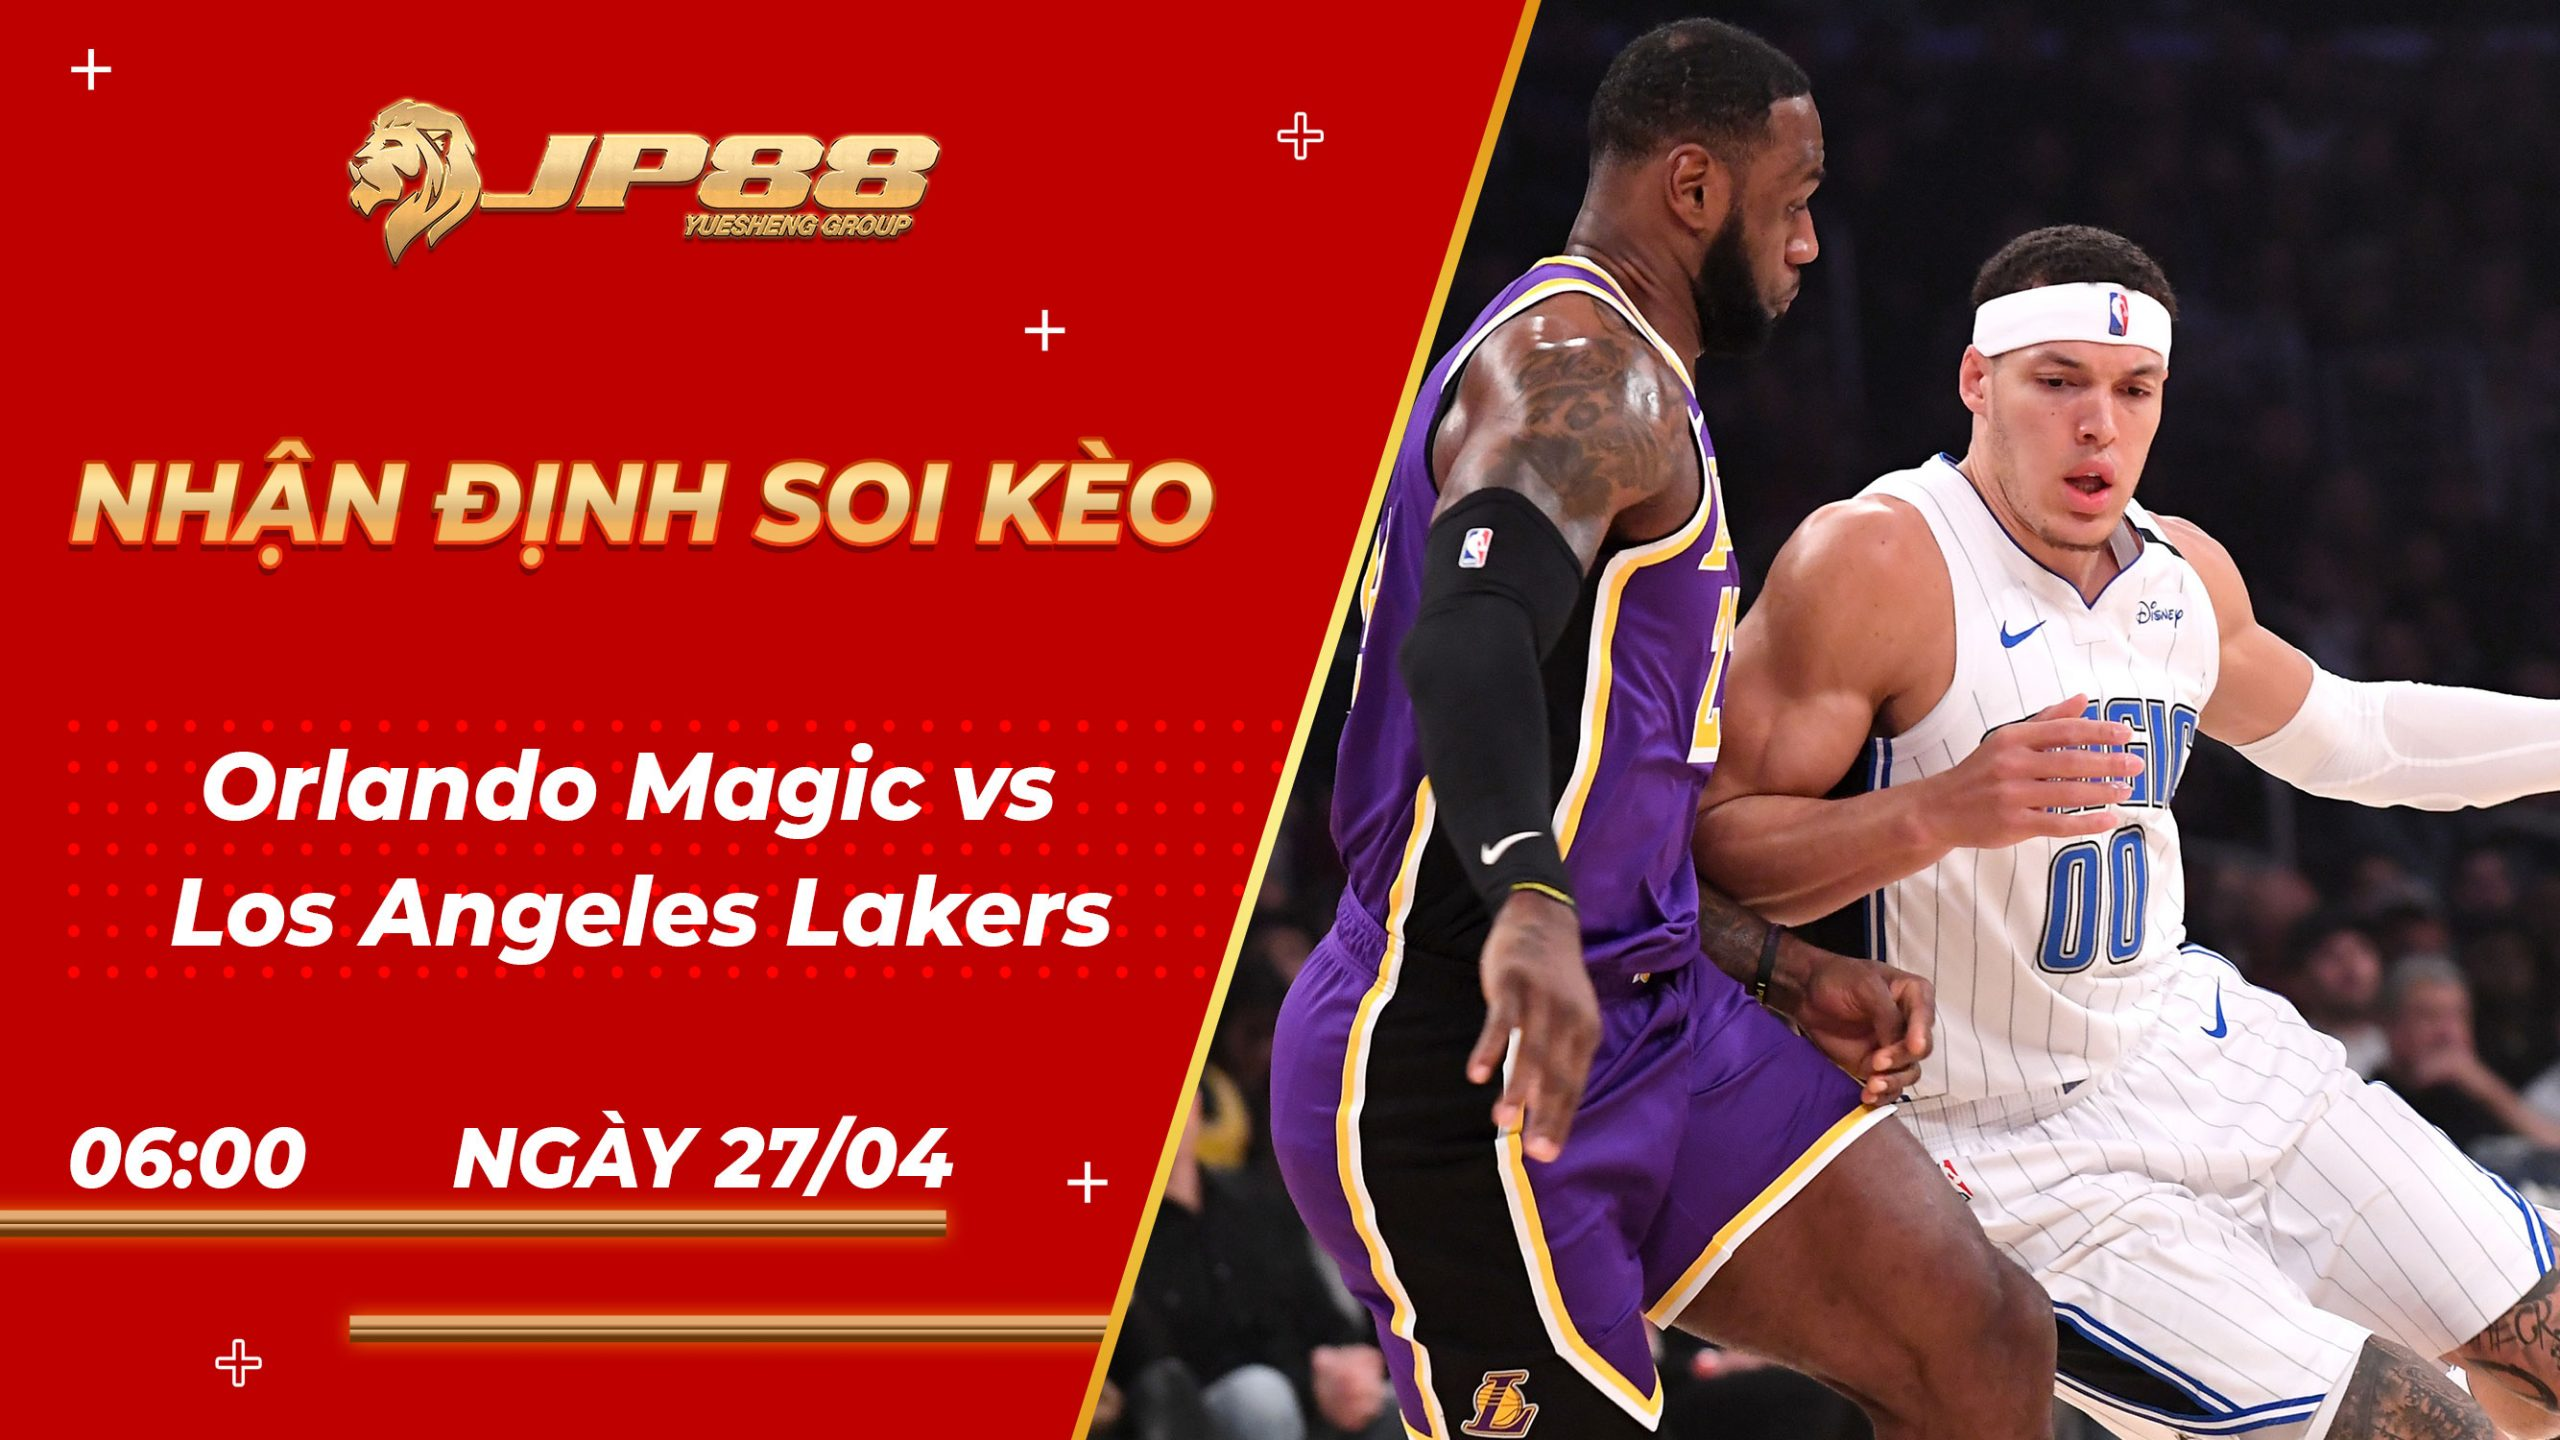 Soi kèo bóng rổ Orlando Magic vs Los Angeles Lakers 06h05 27/04/2021 - NBA